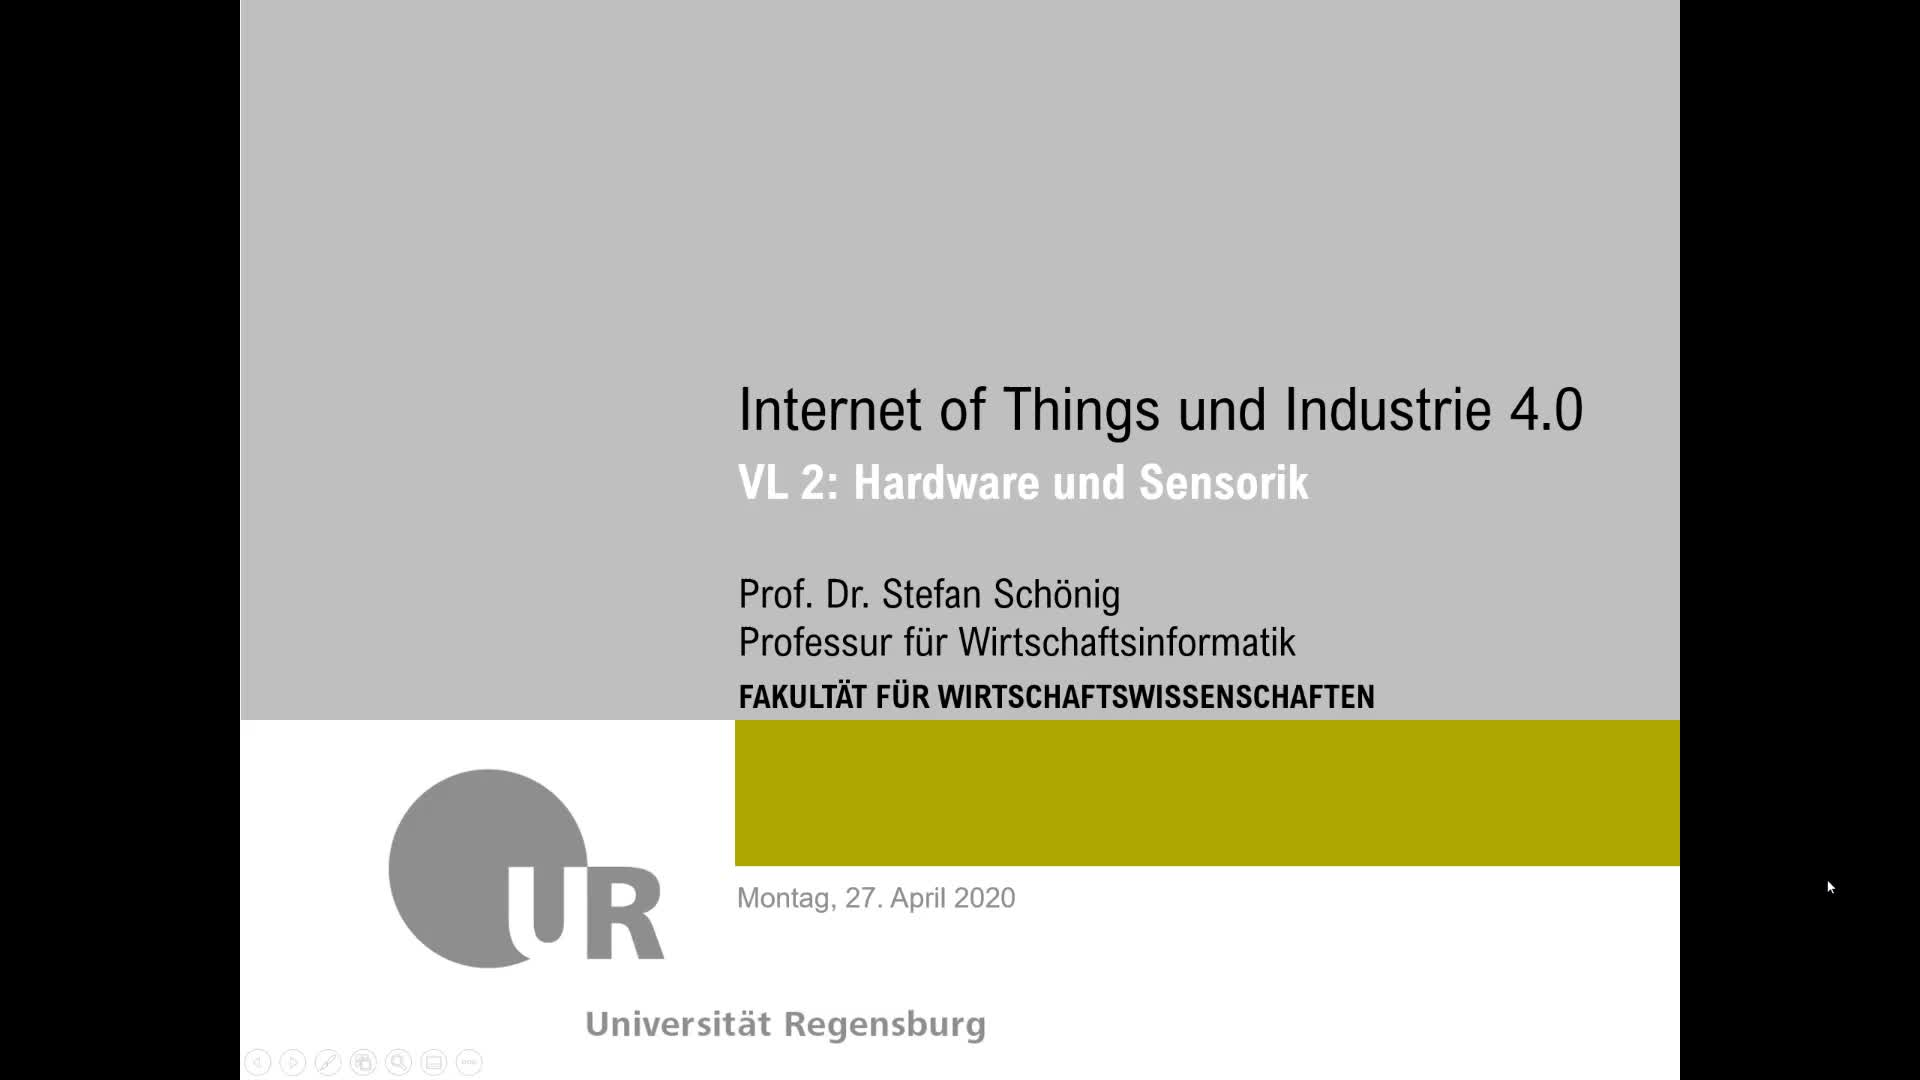 SS 2020 - Internet of Things und Industrie 4.0 - Kapitel 2 (Hardware - Sensorik)